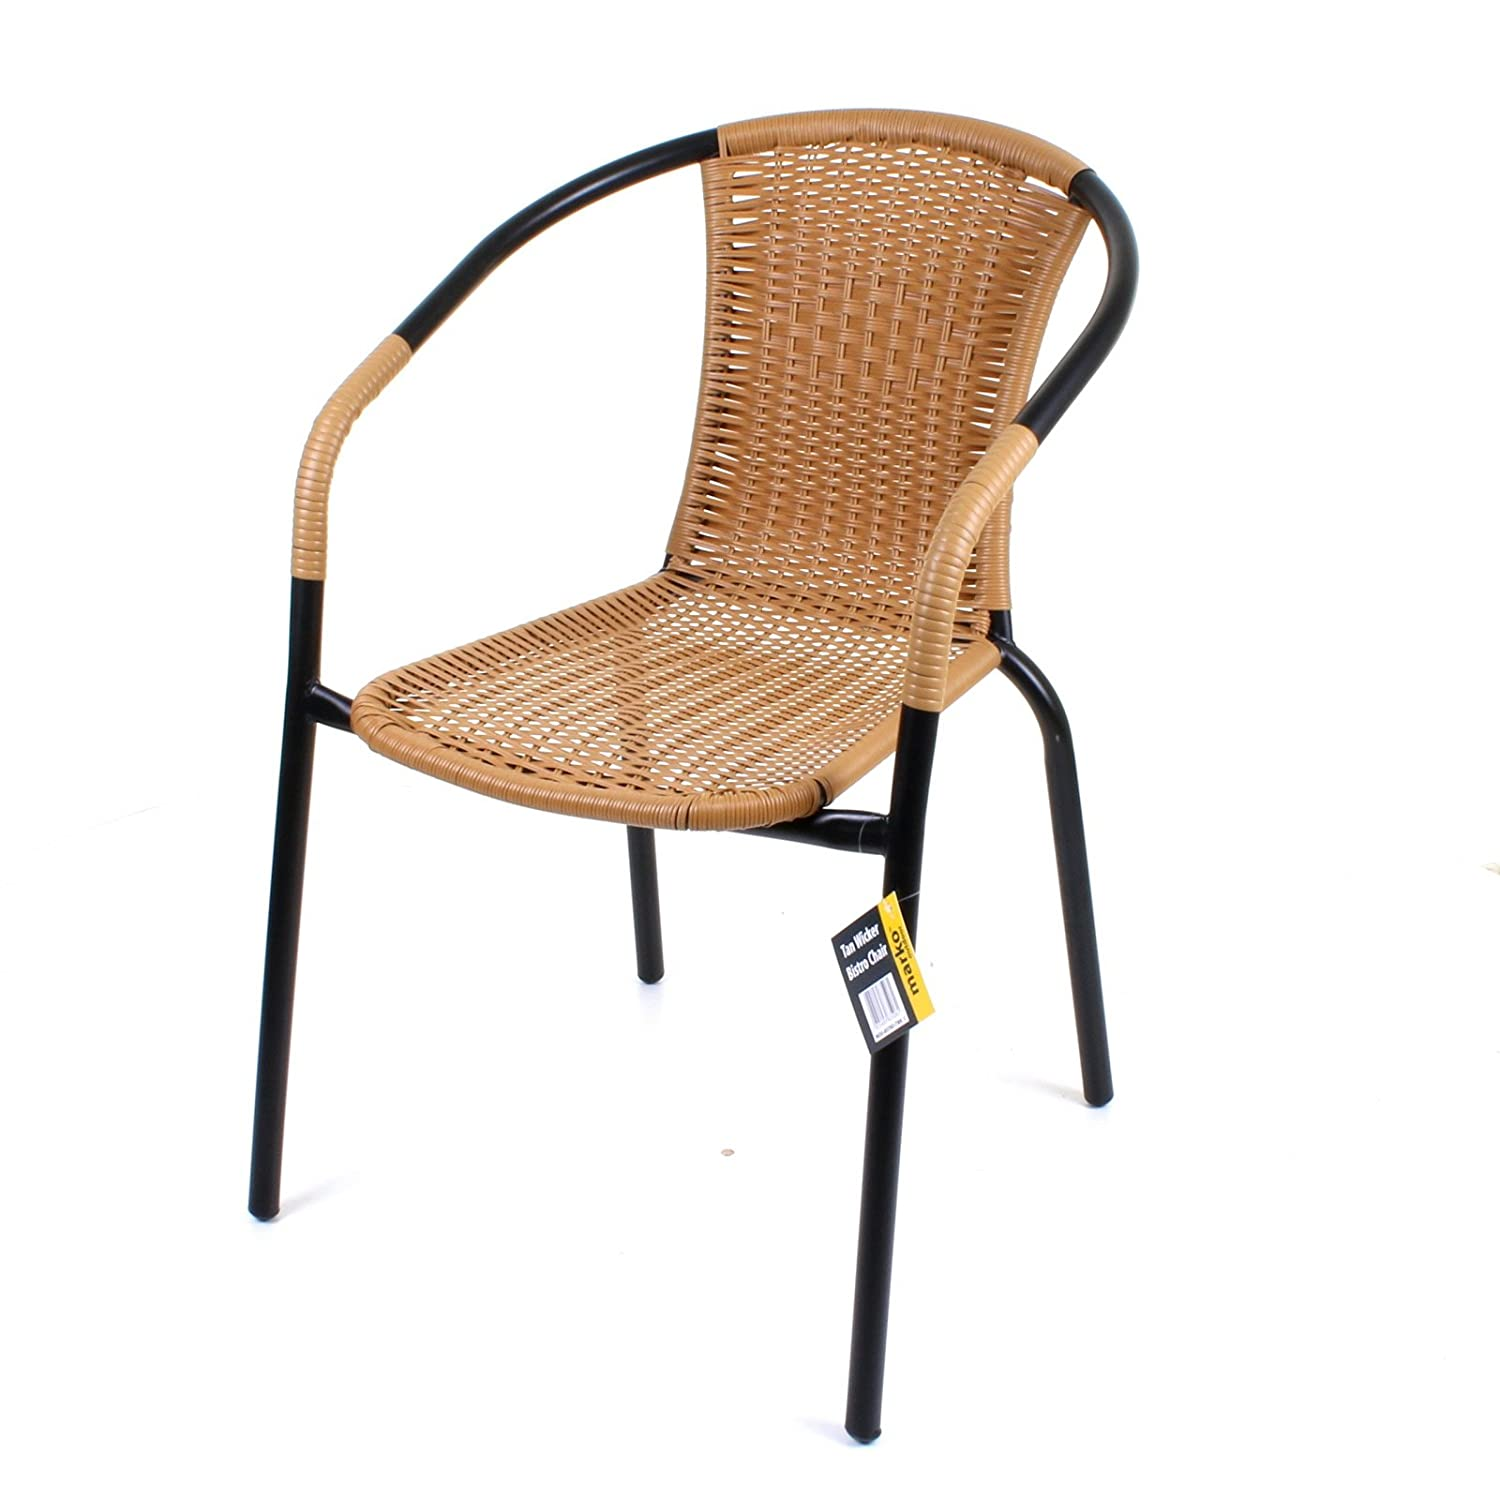 Marko Outdoor Bistro Chair Outdoor Tan Wicker Rattan Woven Seat